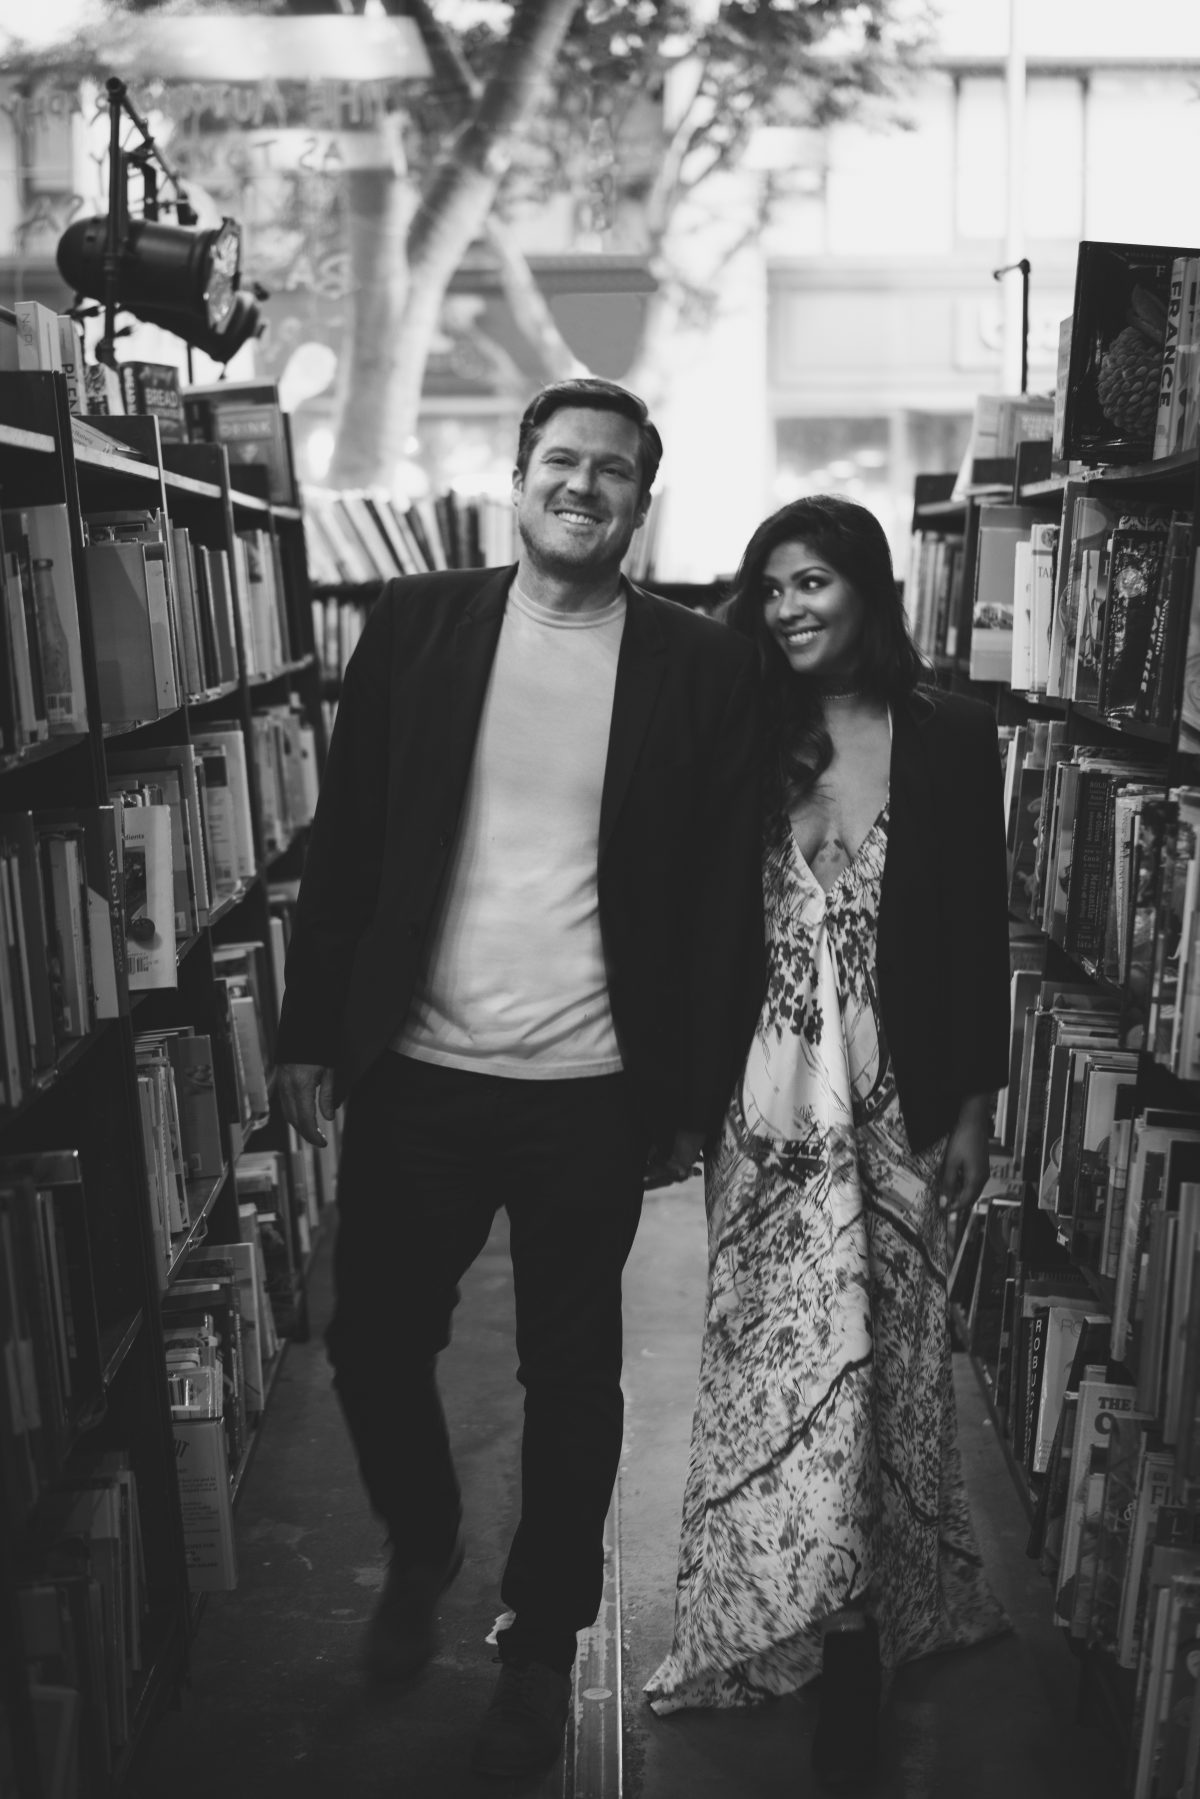 Lovers walking among books in Los Angeles California